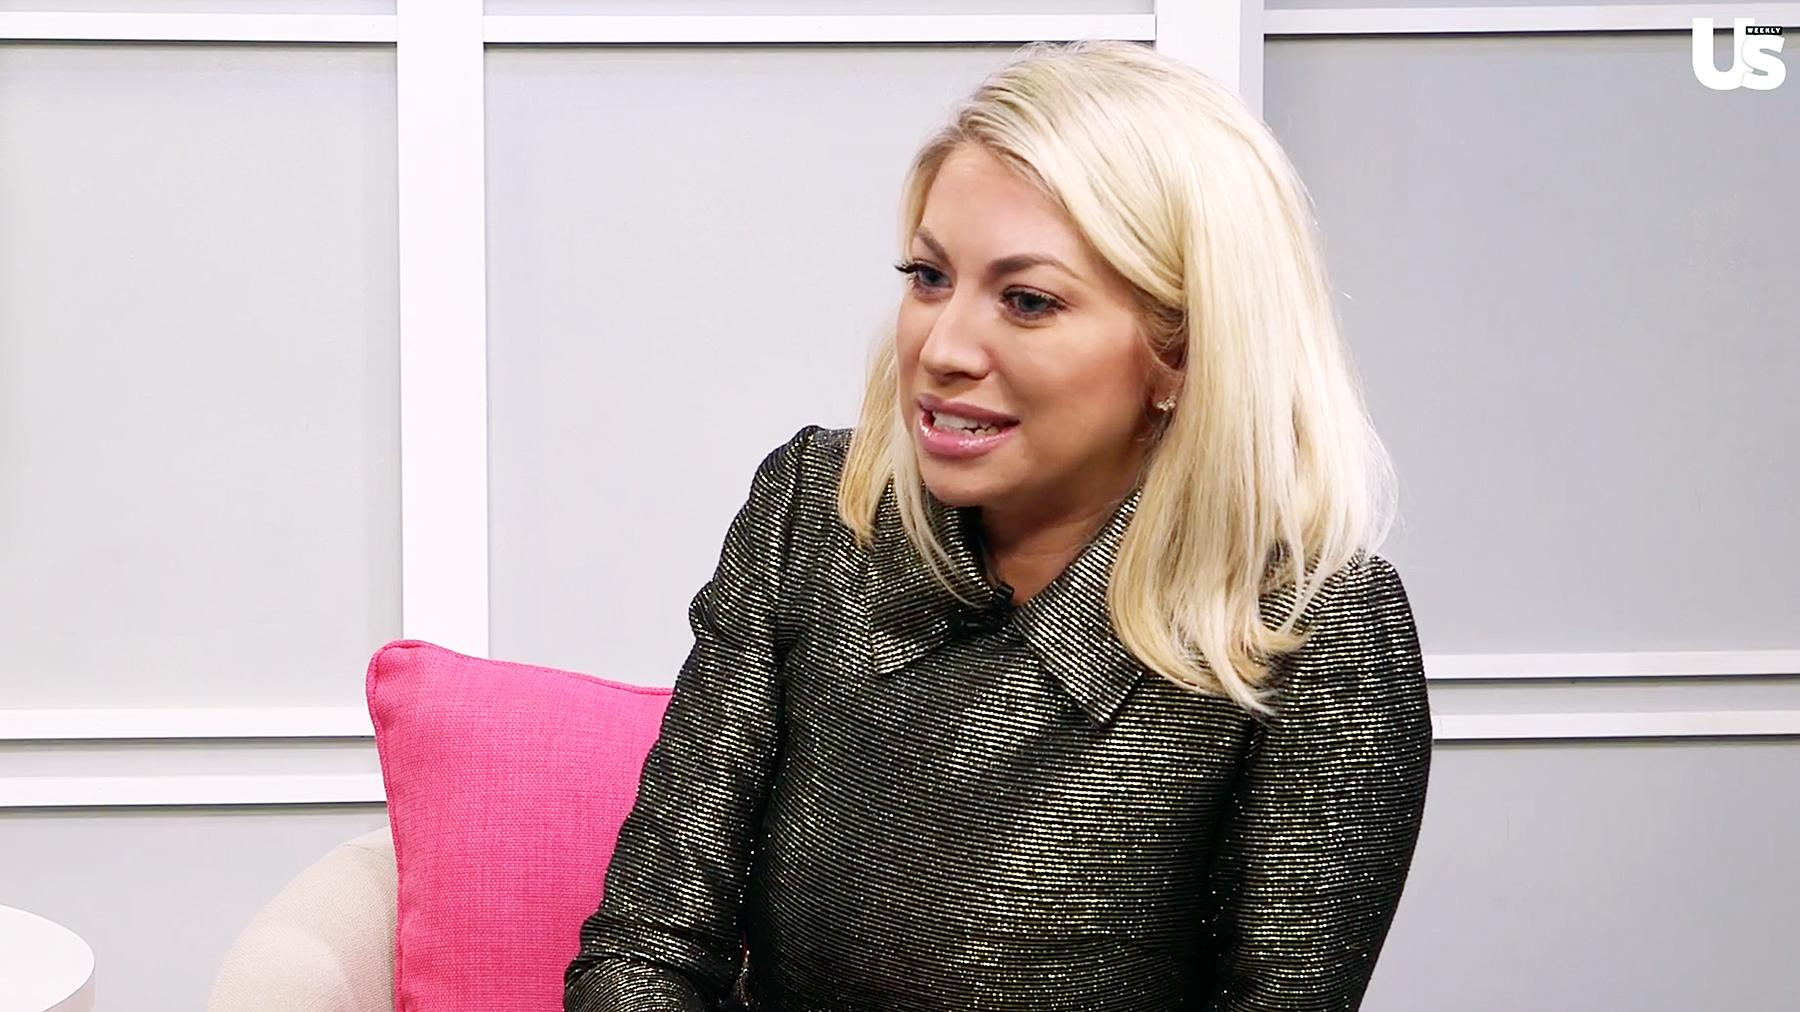 Stassi Schroeder Spills On Upcoming Installment Of Vanderpump Rules -- She And Jax Taylor Will Have A 'Bad' Season